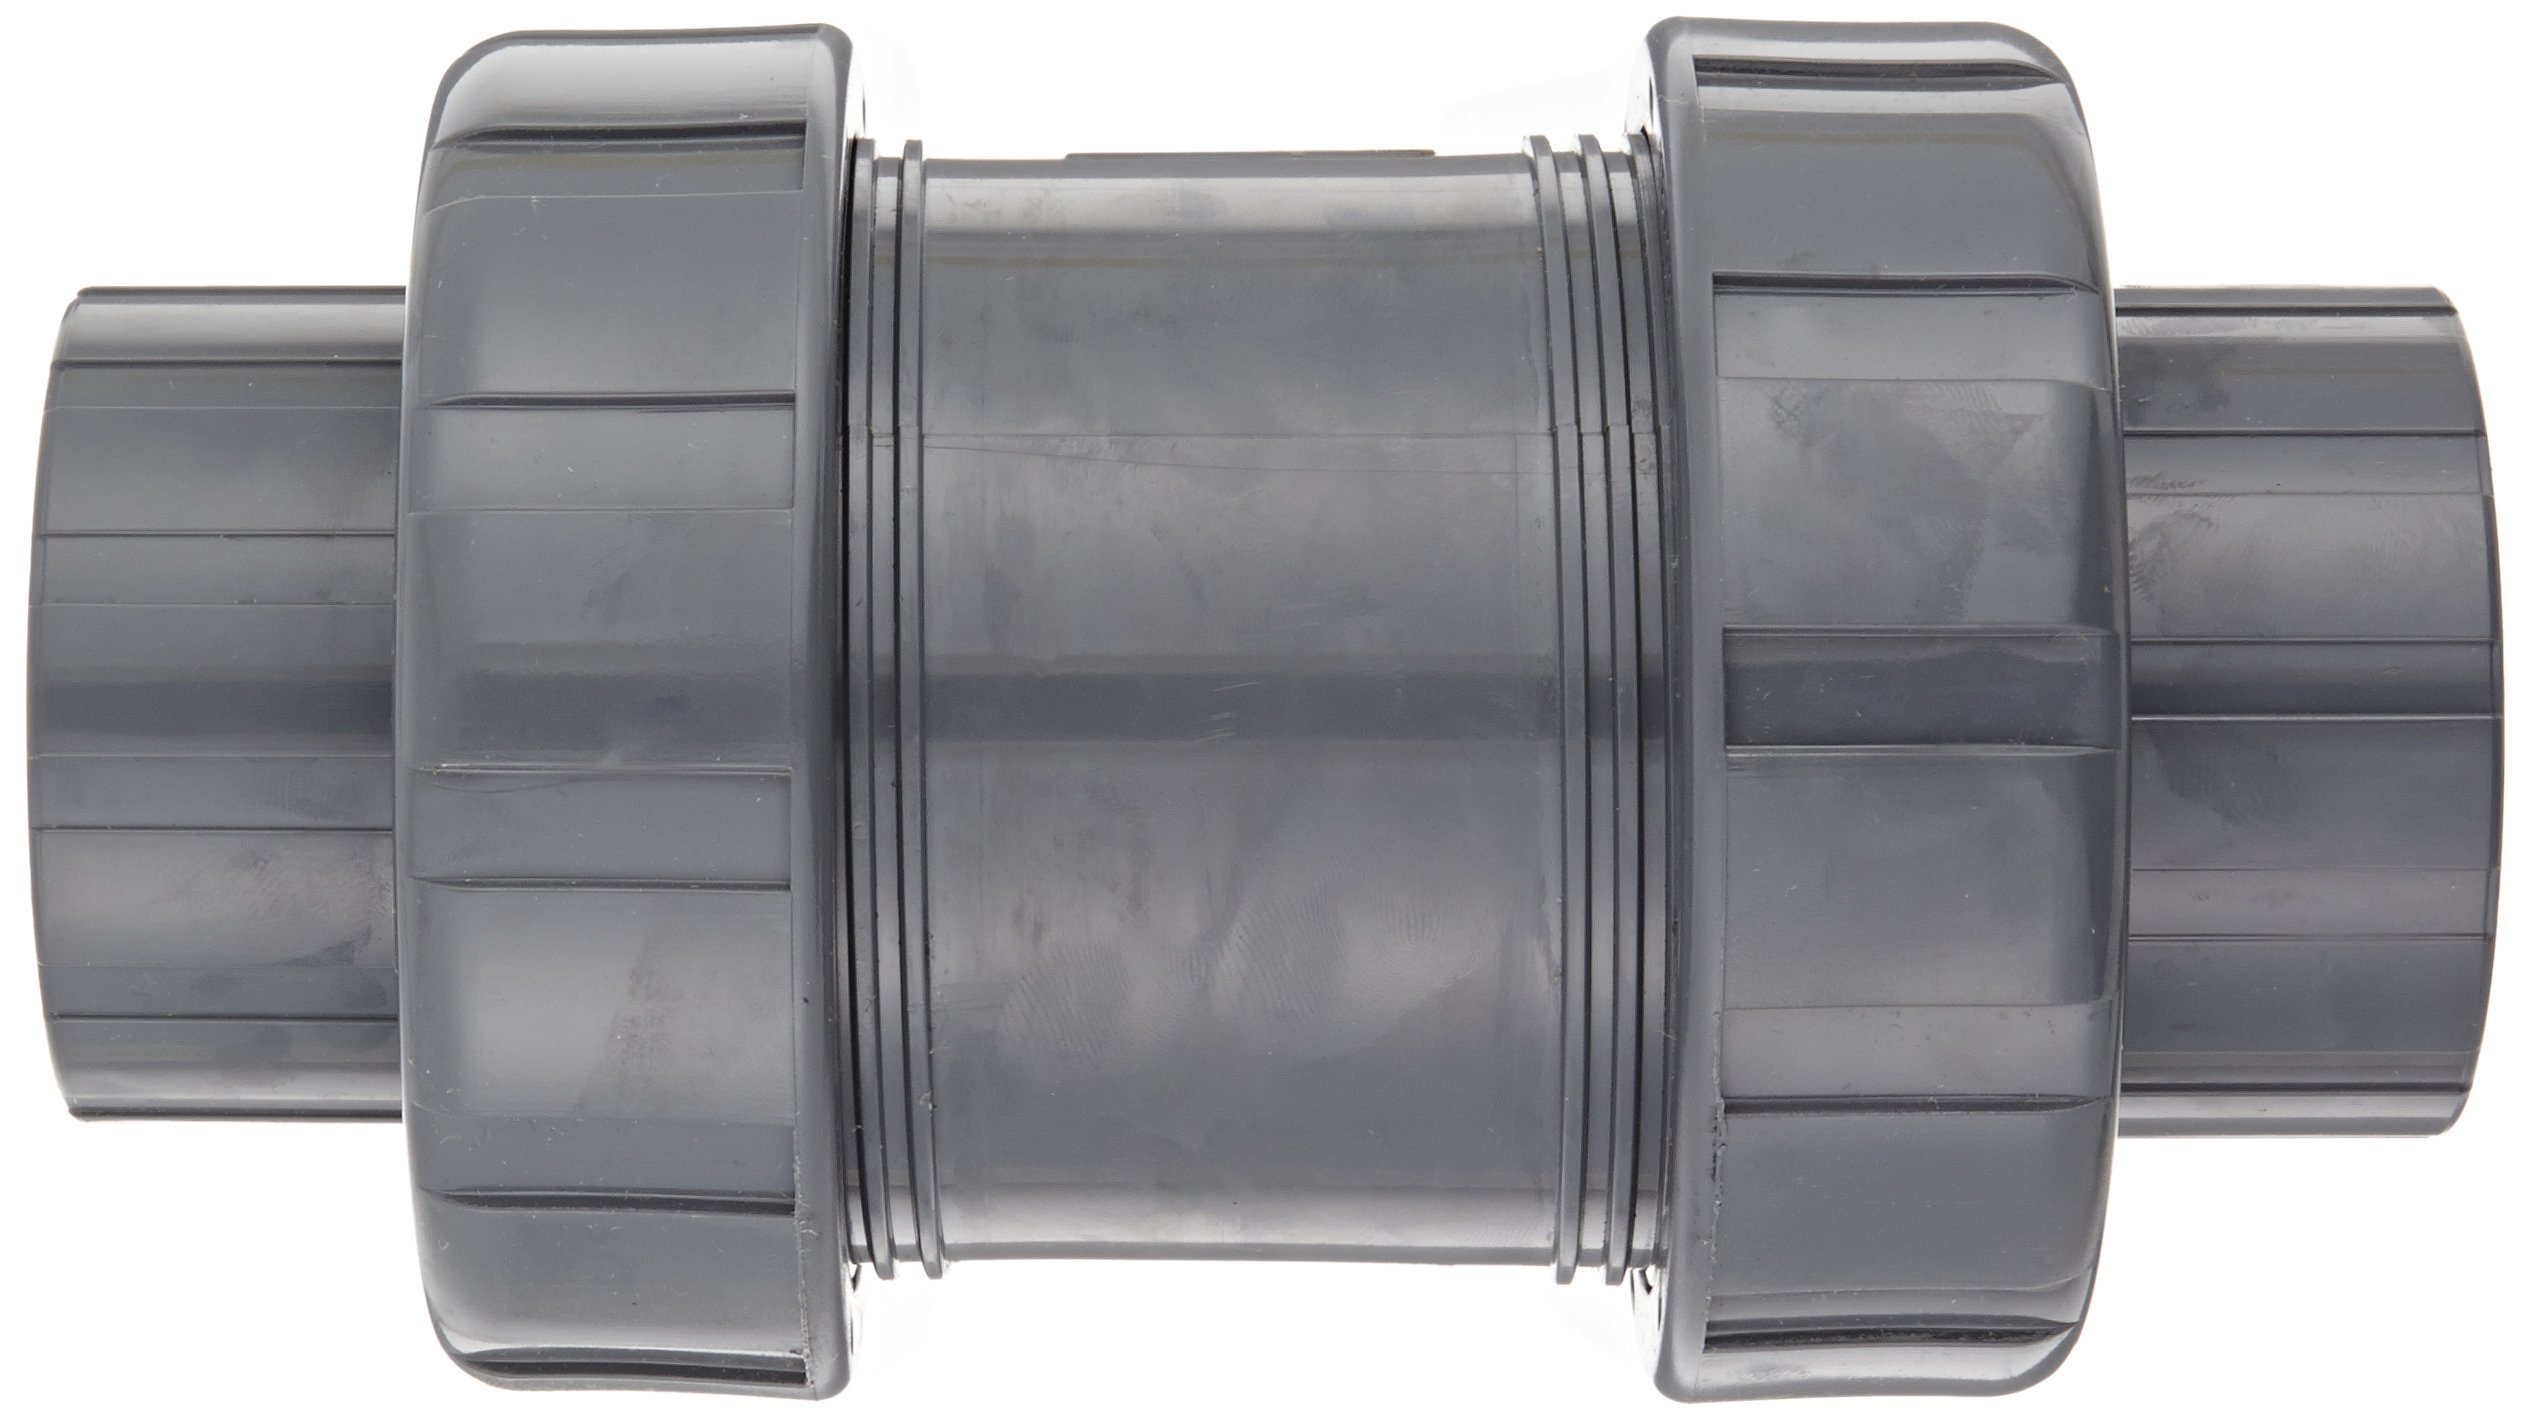 Hayward TC10200ST Series TC True Union Ball Check Valve, Socket/Threaded End, PVC with FPM Seals, 2'' Size by Hayward Flow Control (Image #2)